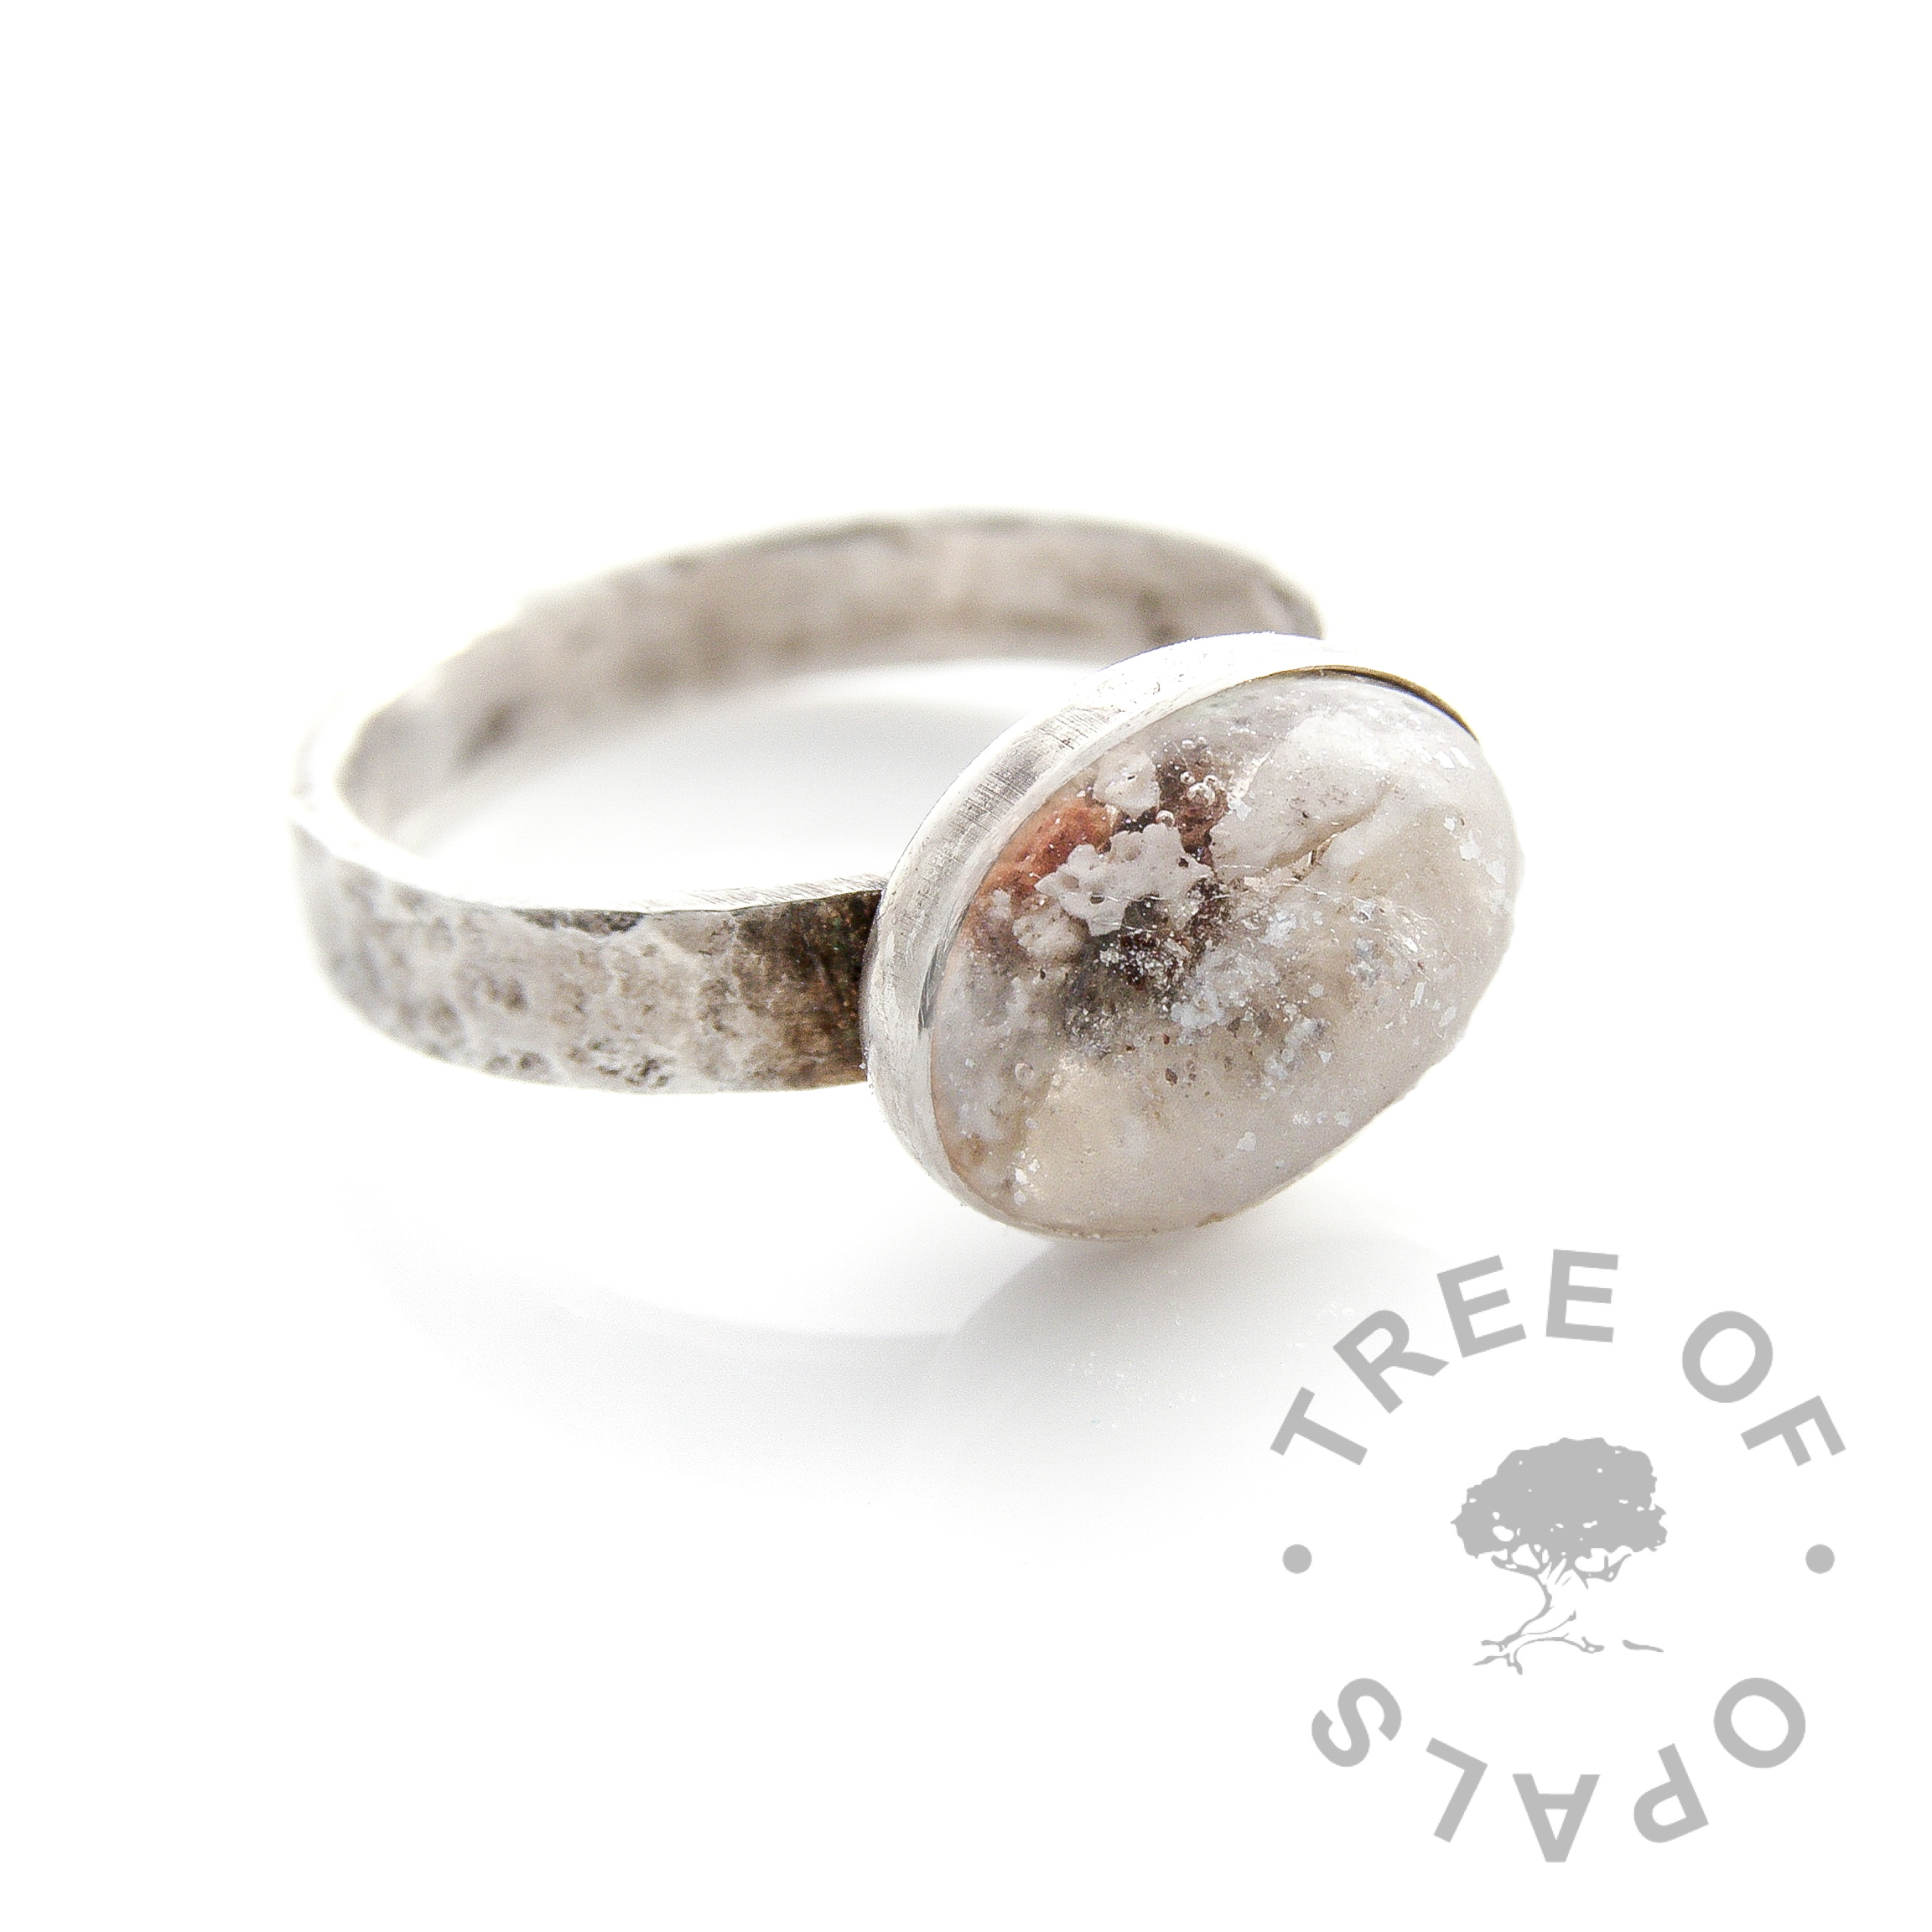 cremation ash ring silver leaf textured band with a slight antique effect by Tree of Opals